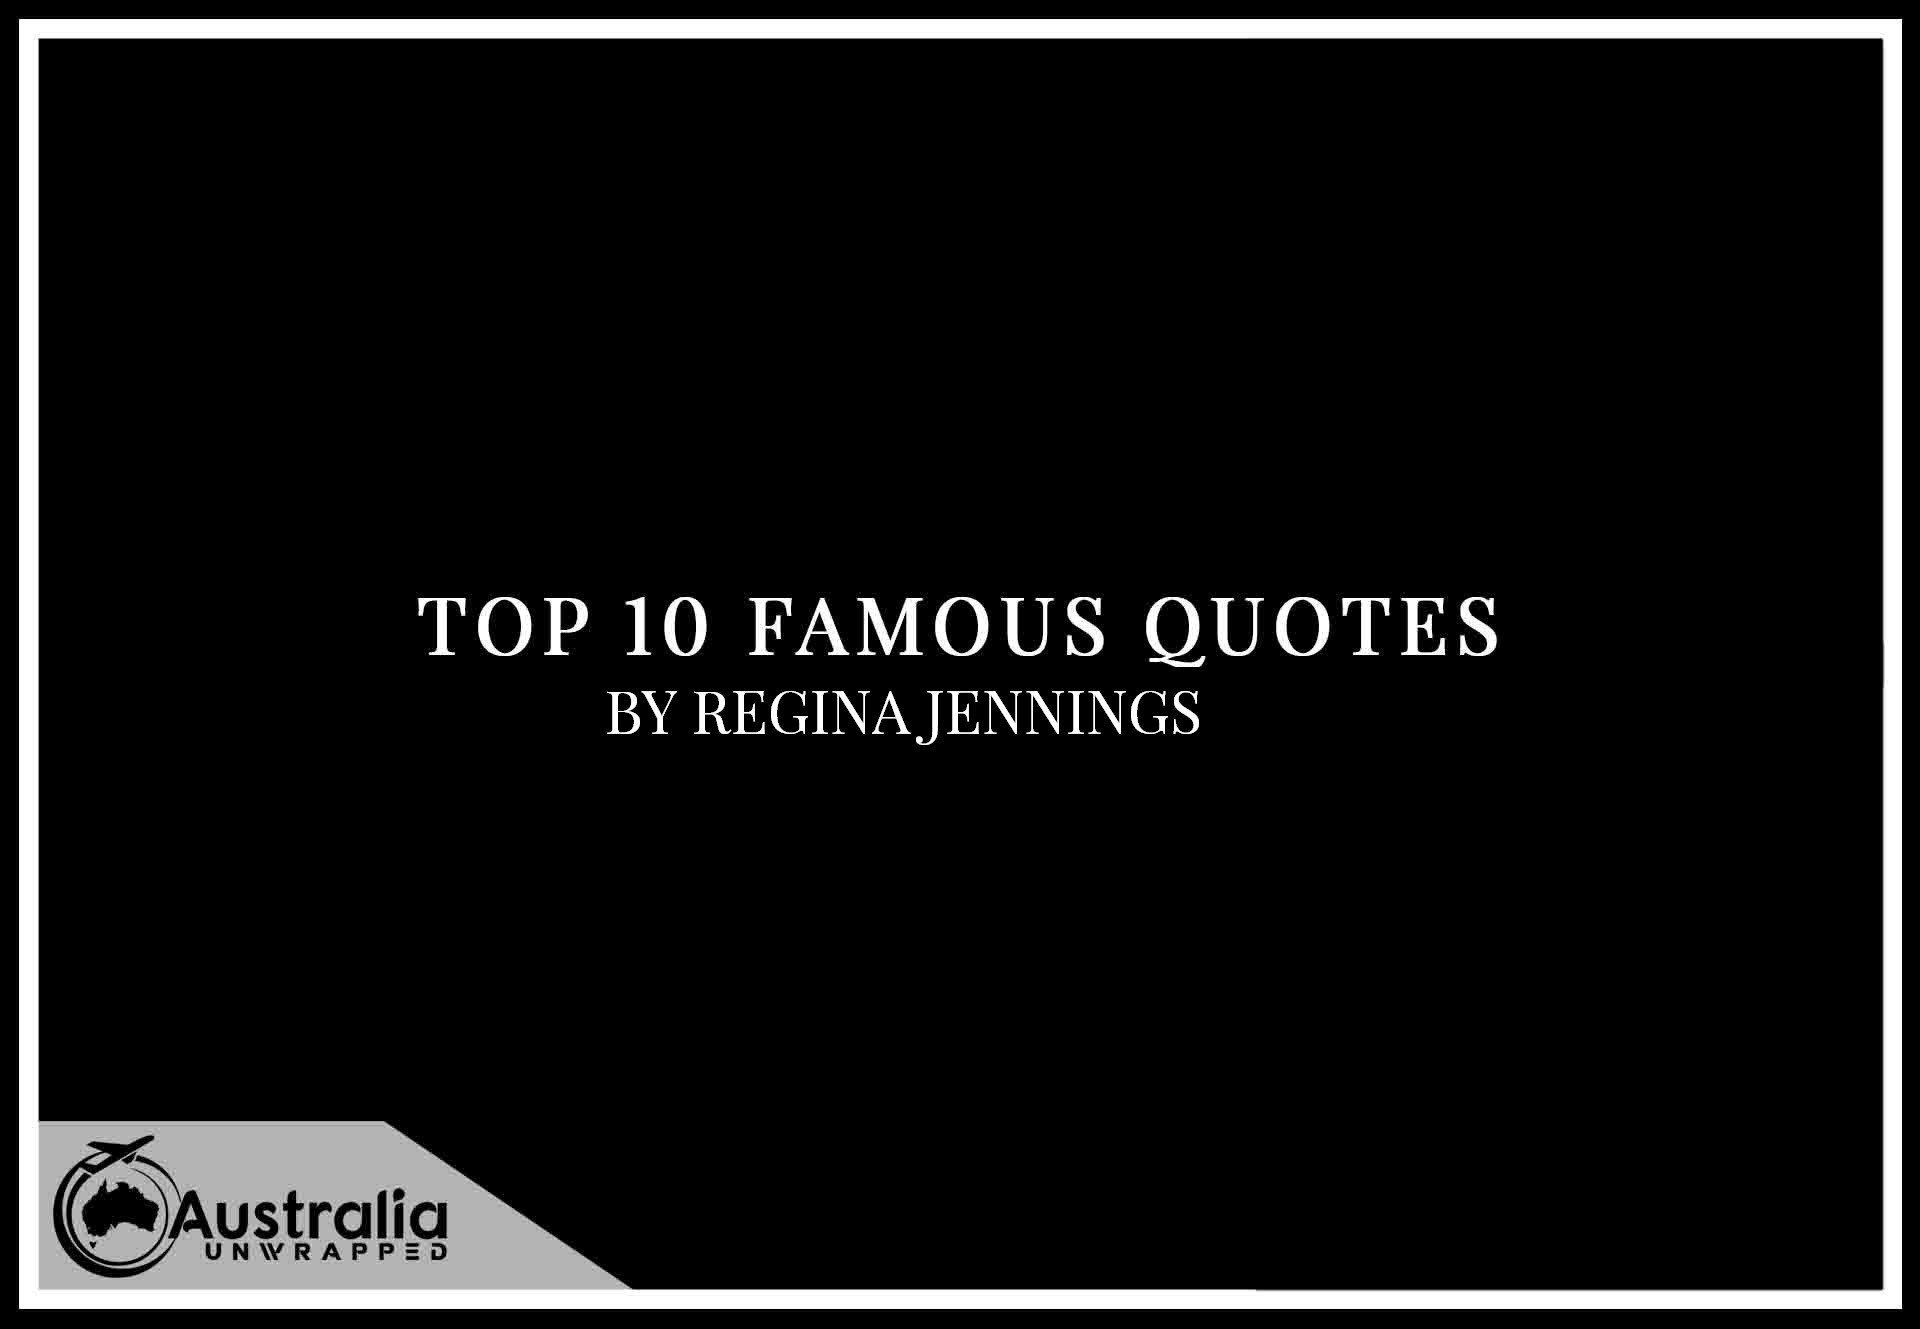 Regina Jennings's Top 10 Popular and Famous Quotes